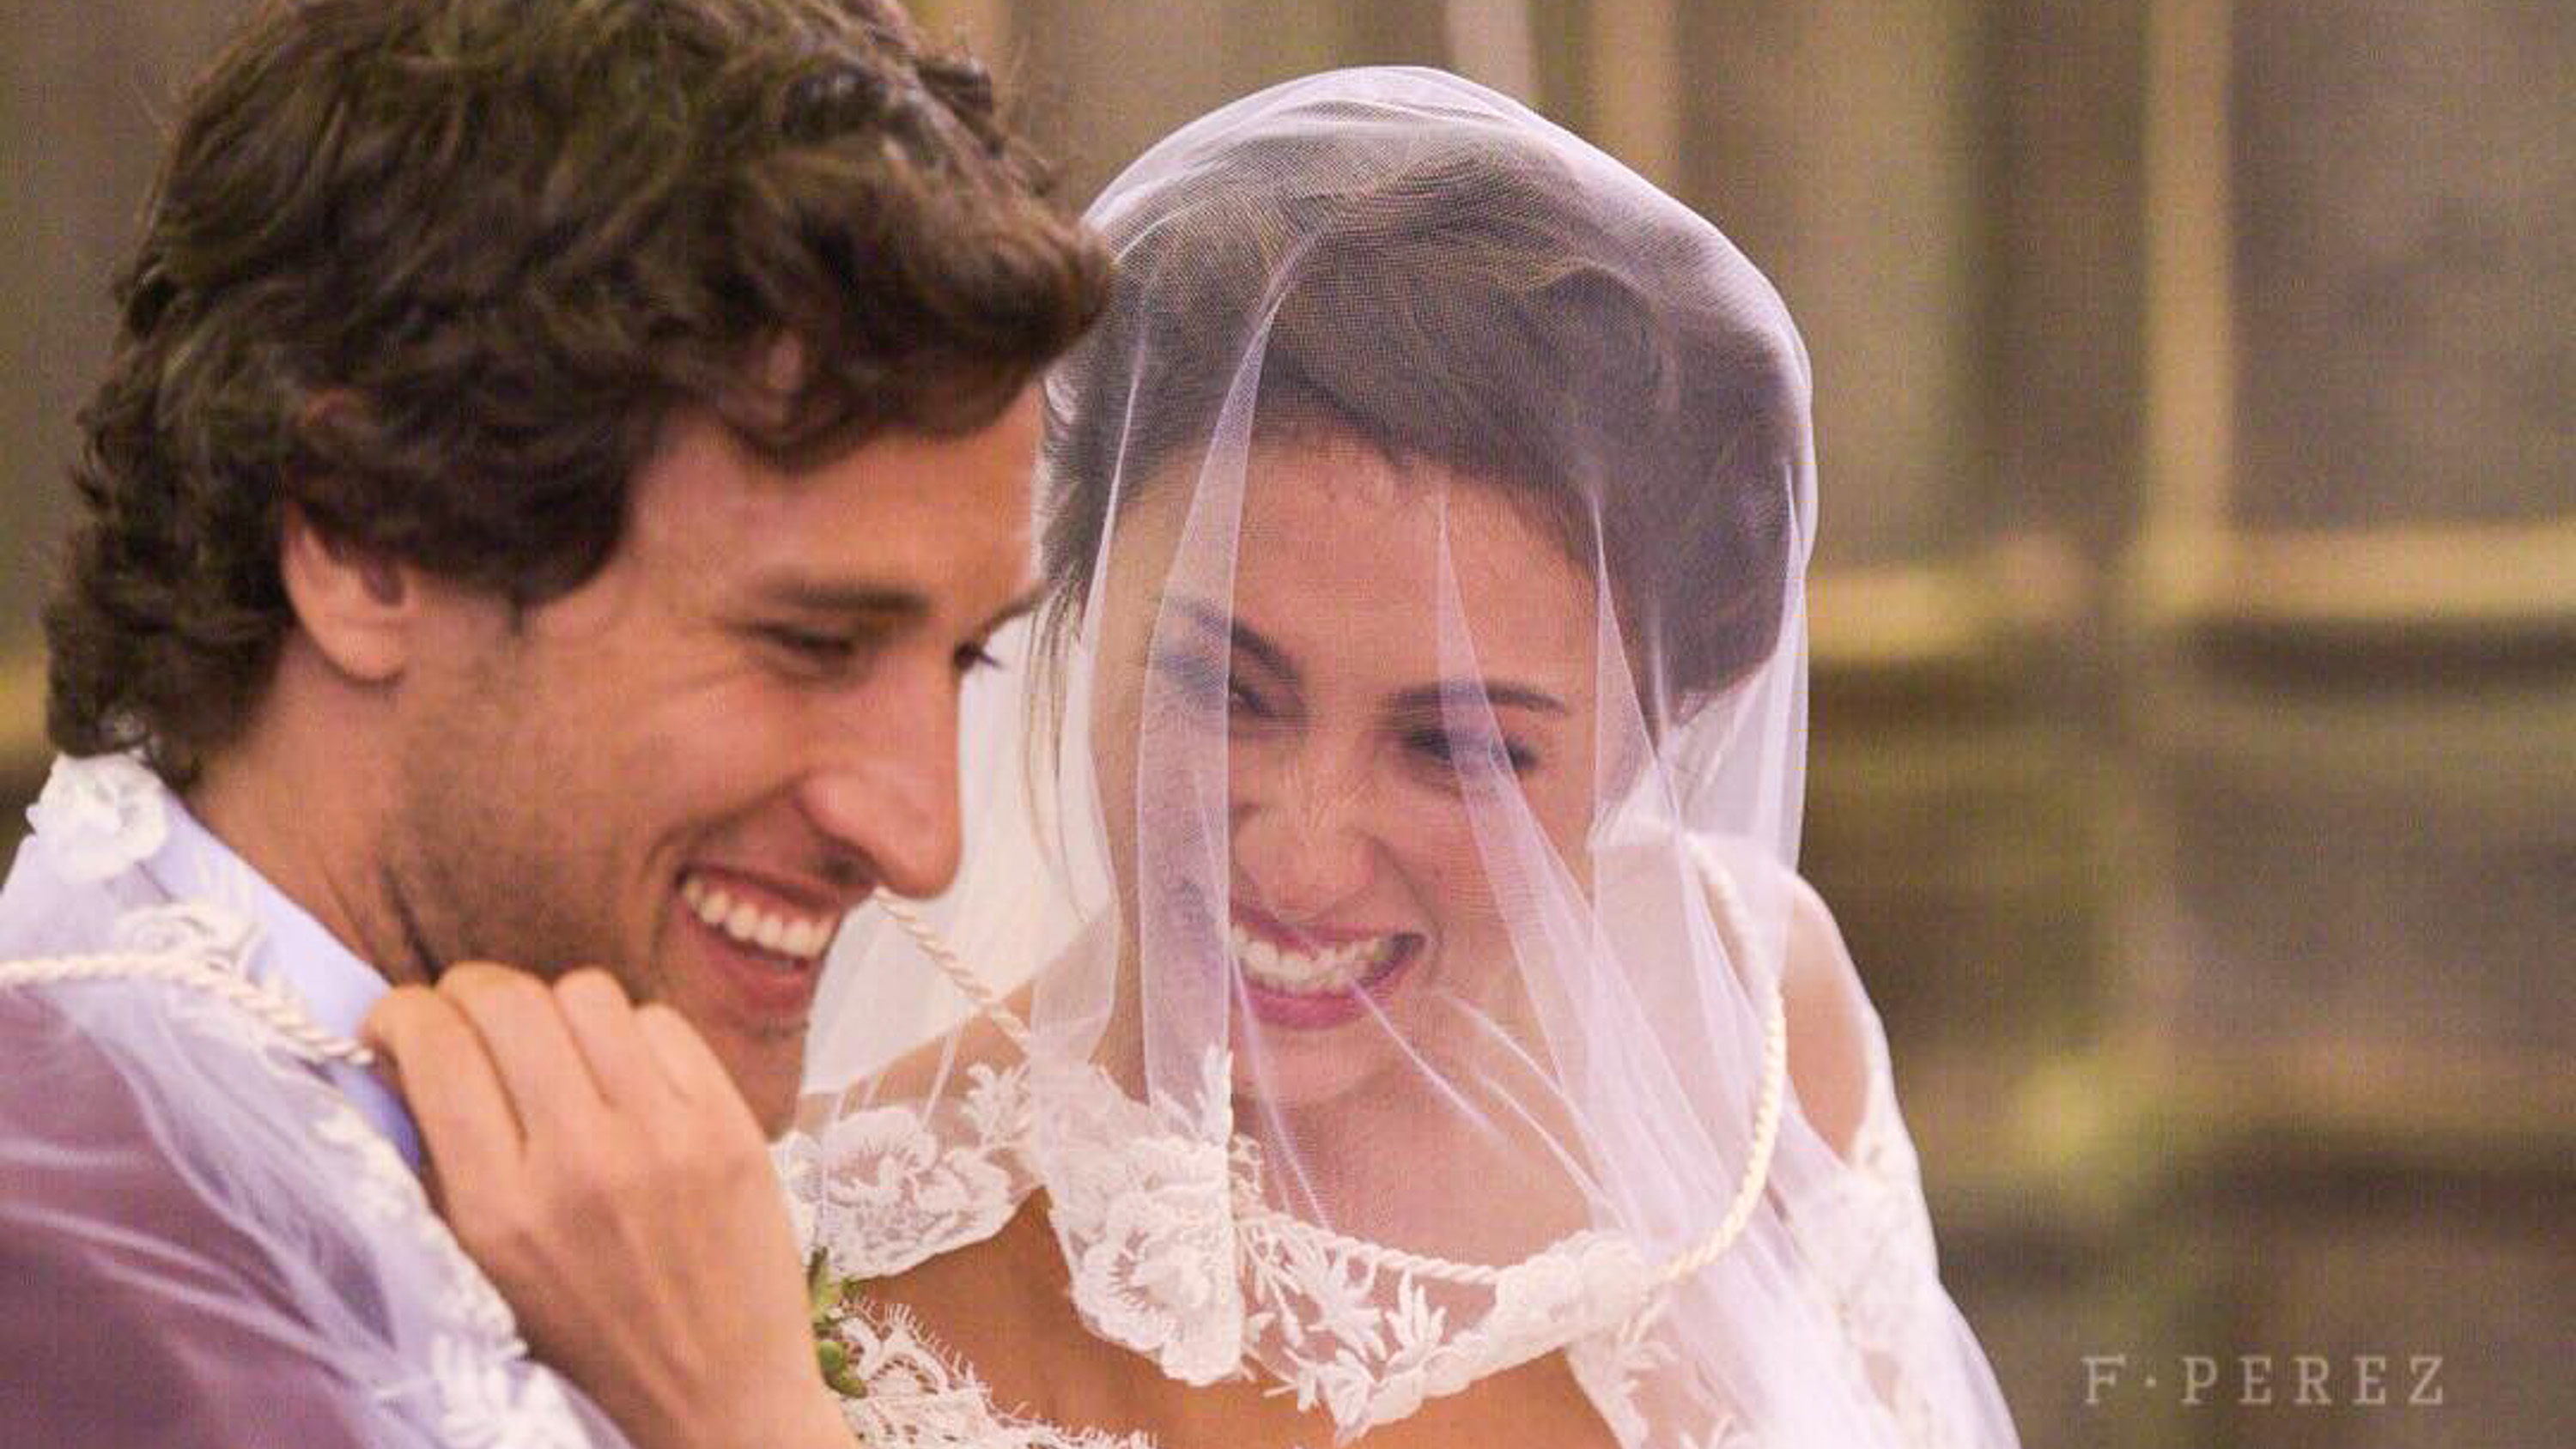 IN PHOTOS: Solenn Heussaff, Nico Bolzico marry in France